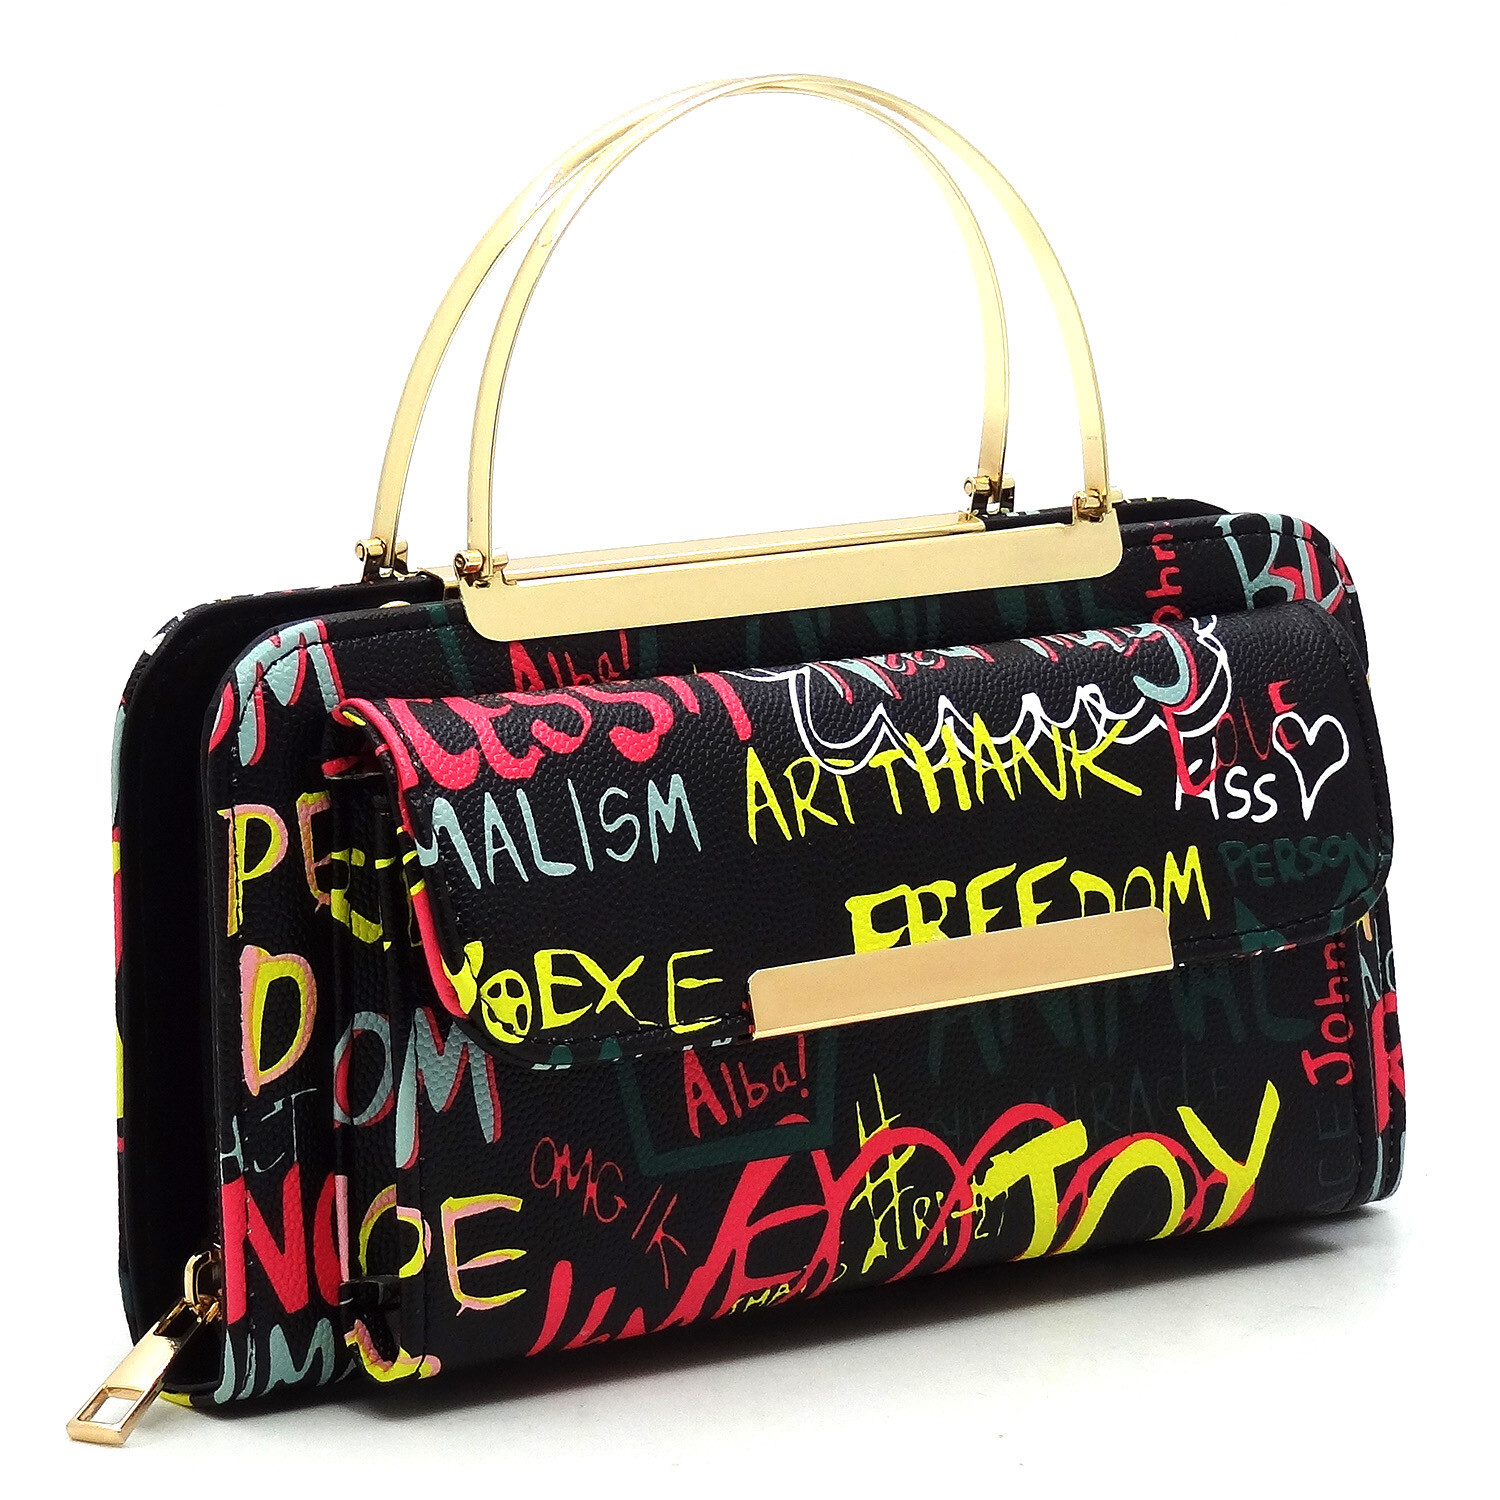 Graffiti Crossbody Purse